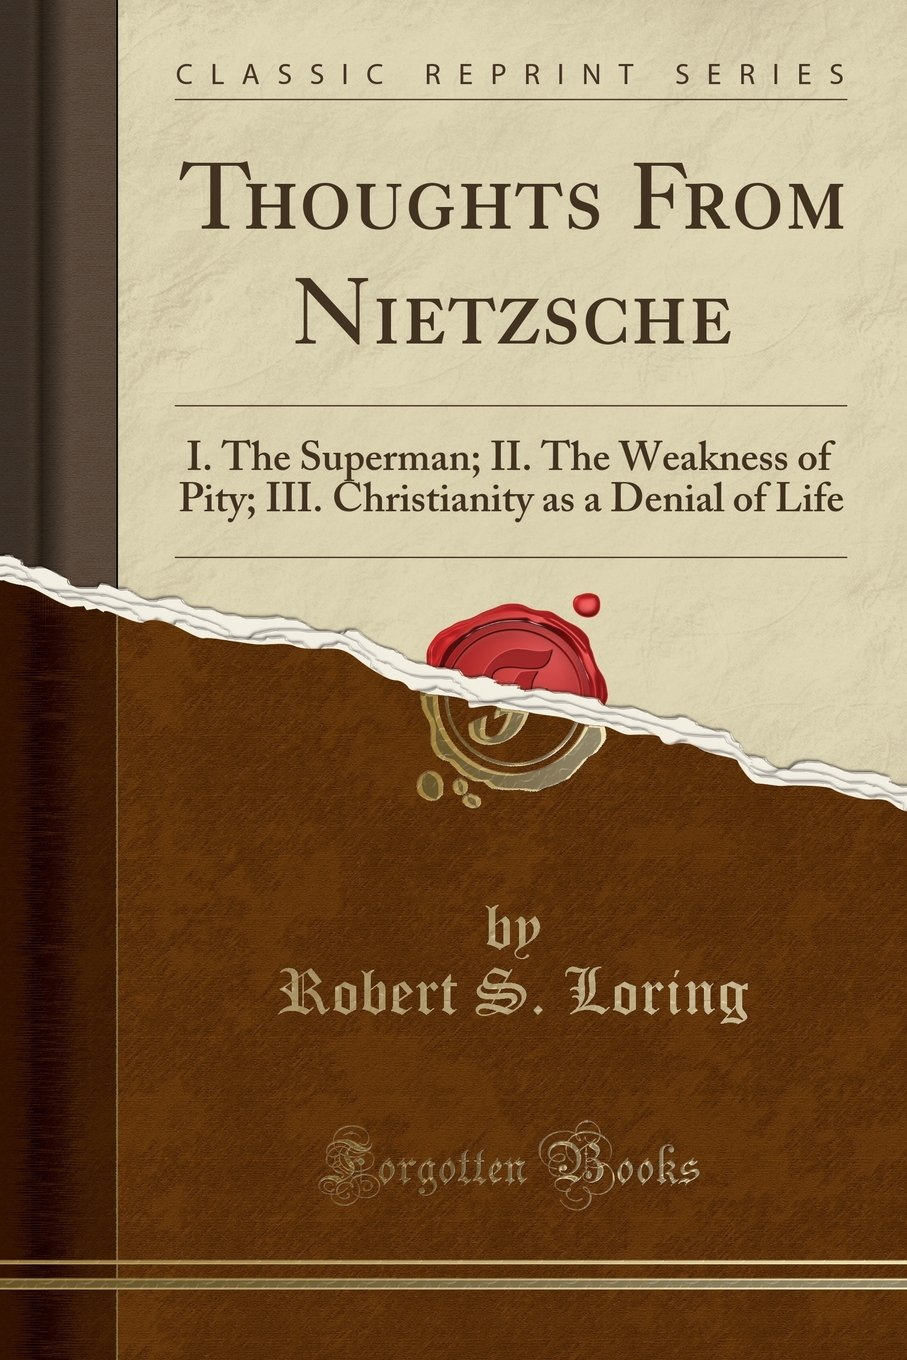 Thoughts From Nietzsche: I. The Superman; II. The Weakness of Pity; III. Christianity as a Denial of Life (Classic Reprint) pdf